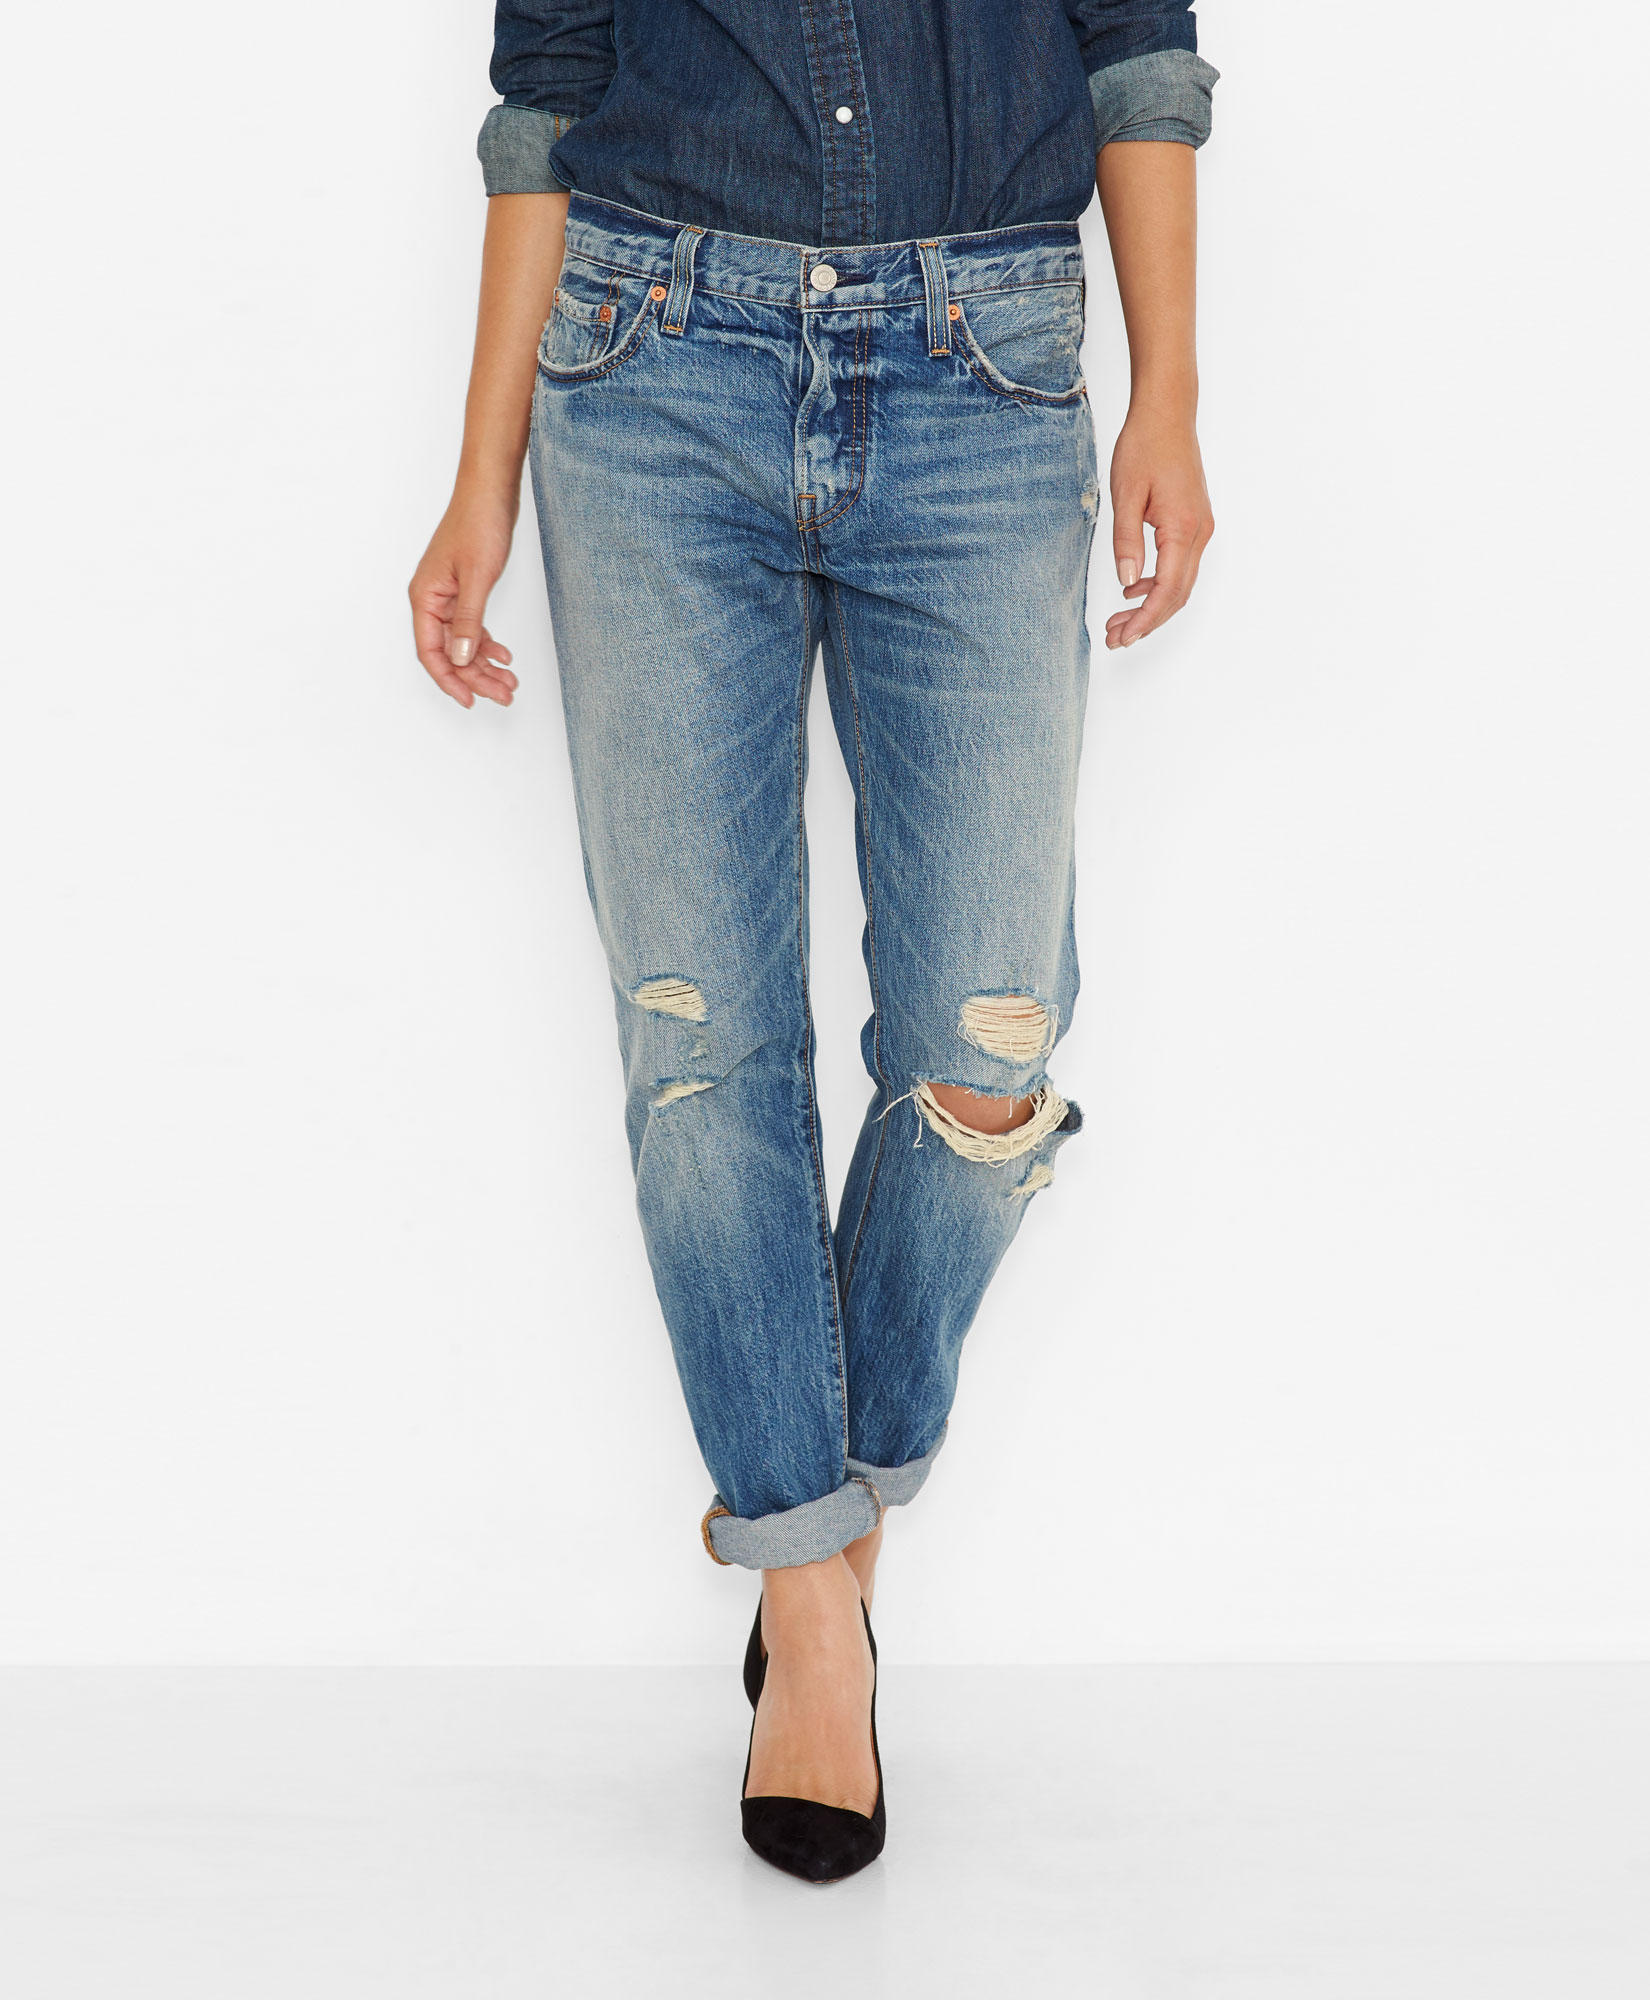 44% Off + Extra 25% Off Levi's Jeans On Sale @ Bon-Ton